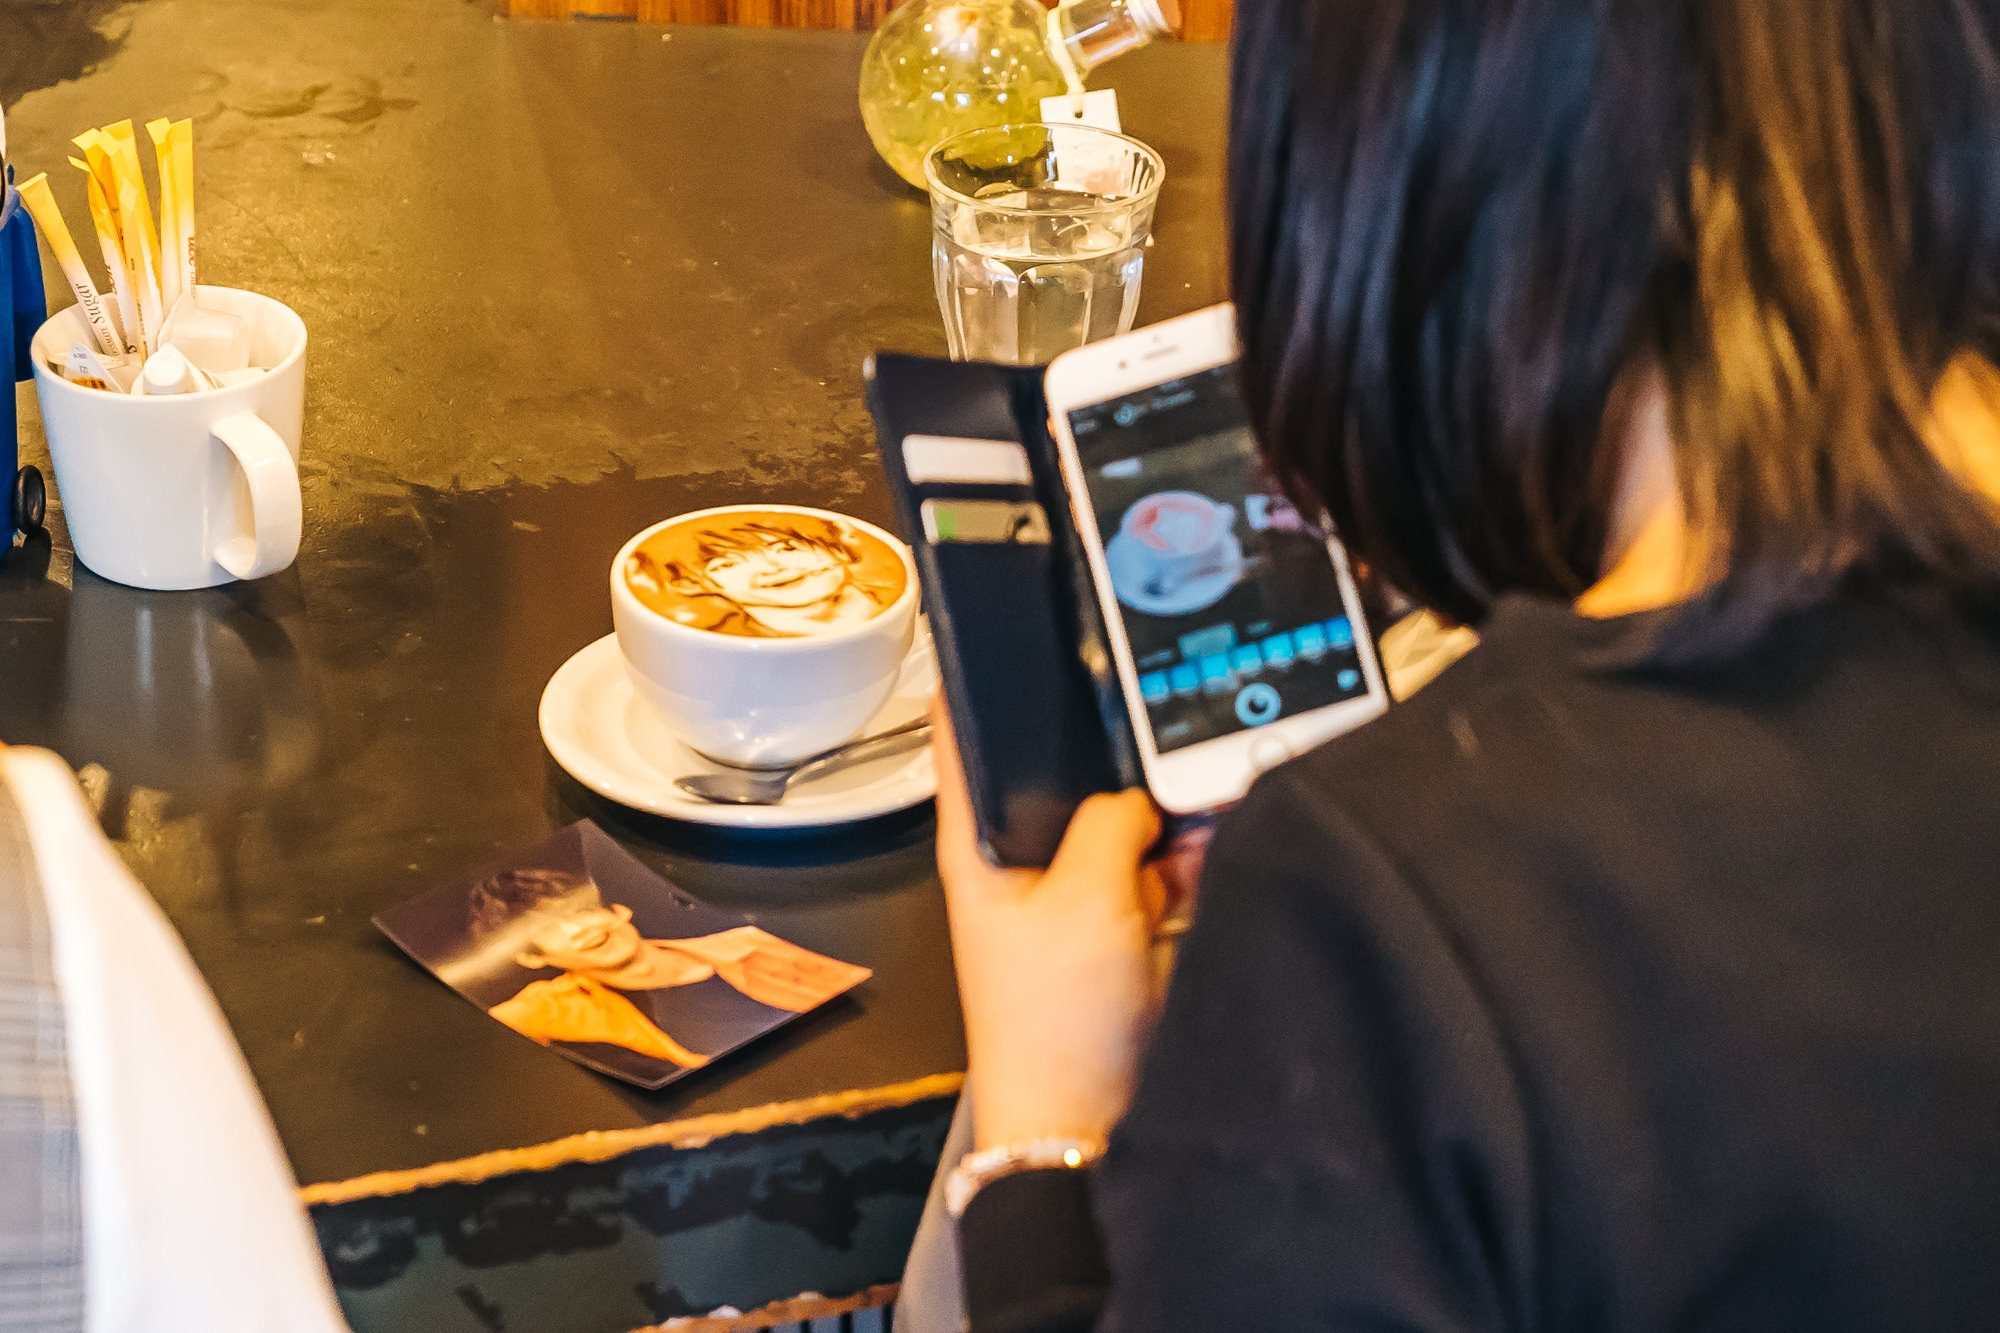 Japanese girls taking pictures of their 2D coffee art